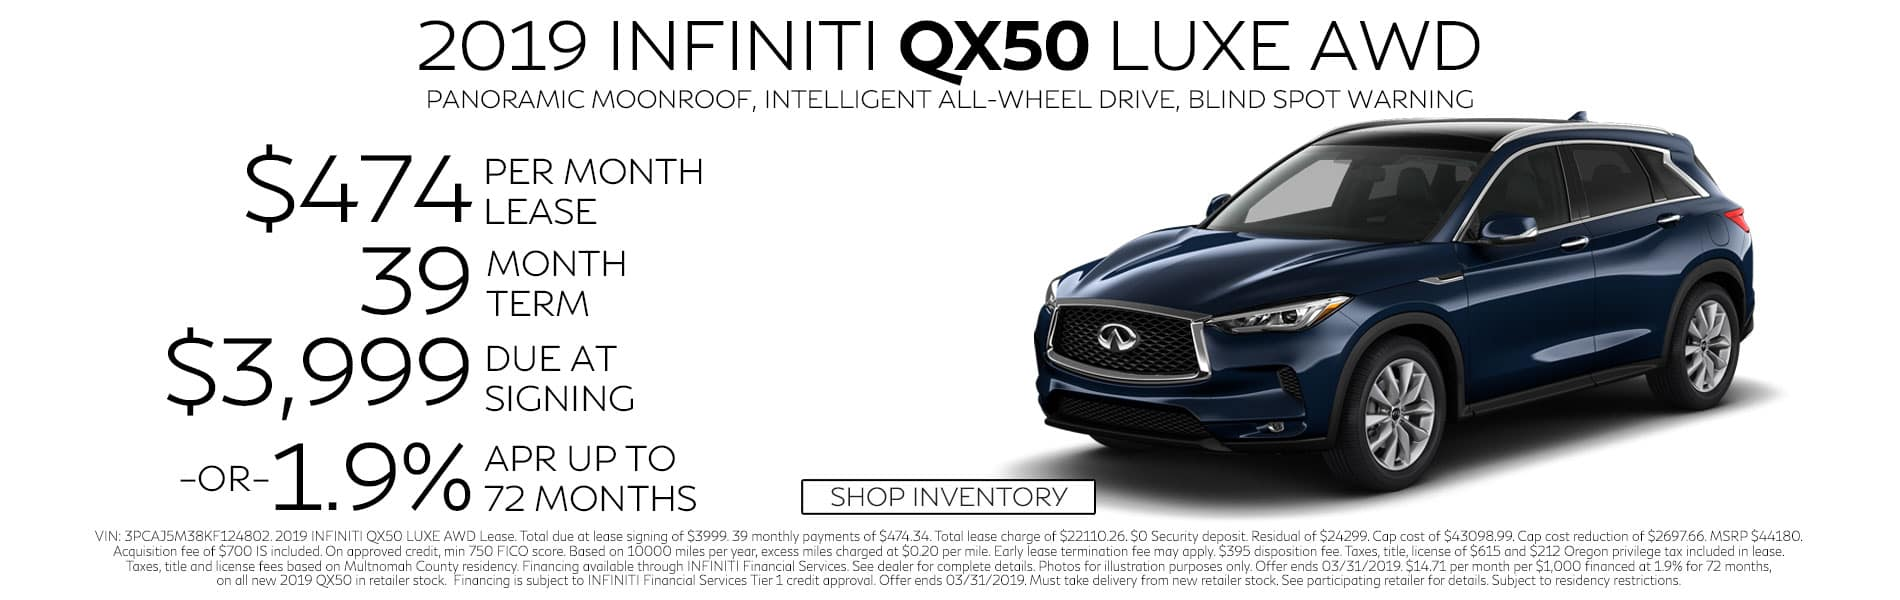 Lease a 2019 QX50 LUXE AWD for $474 per month with $3,999 due at signing